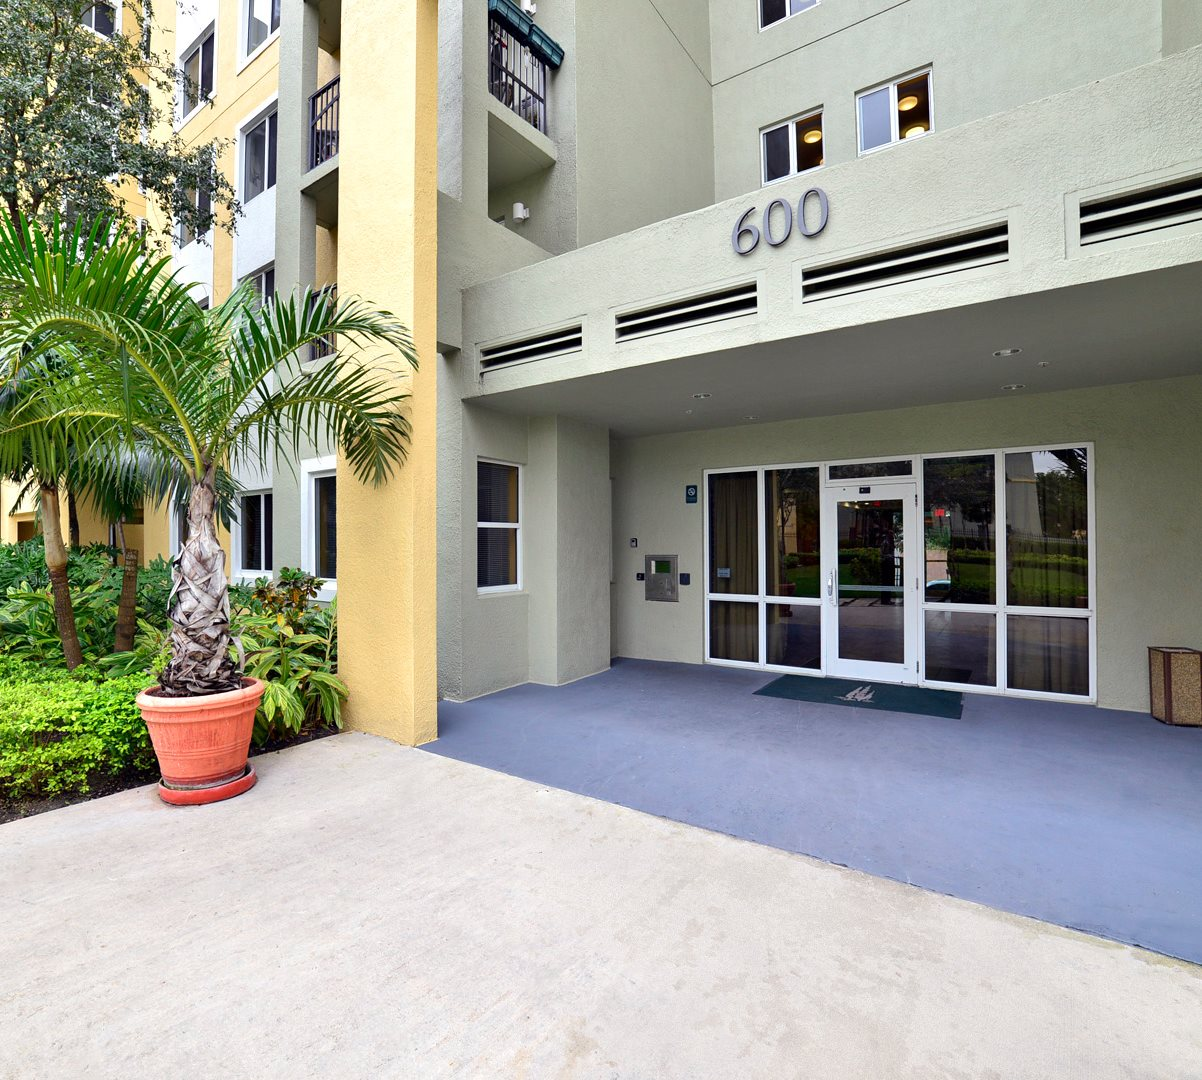 Tuscany Apartments: Apartments In Miami, FL